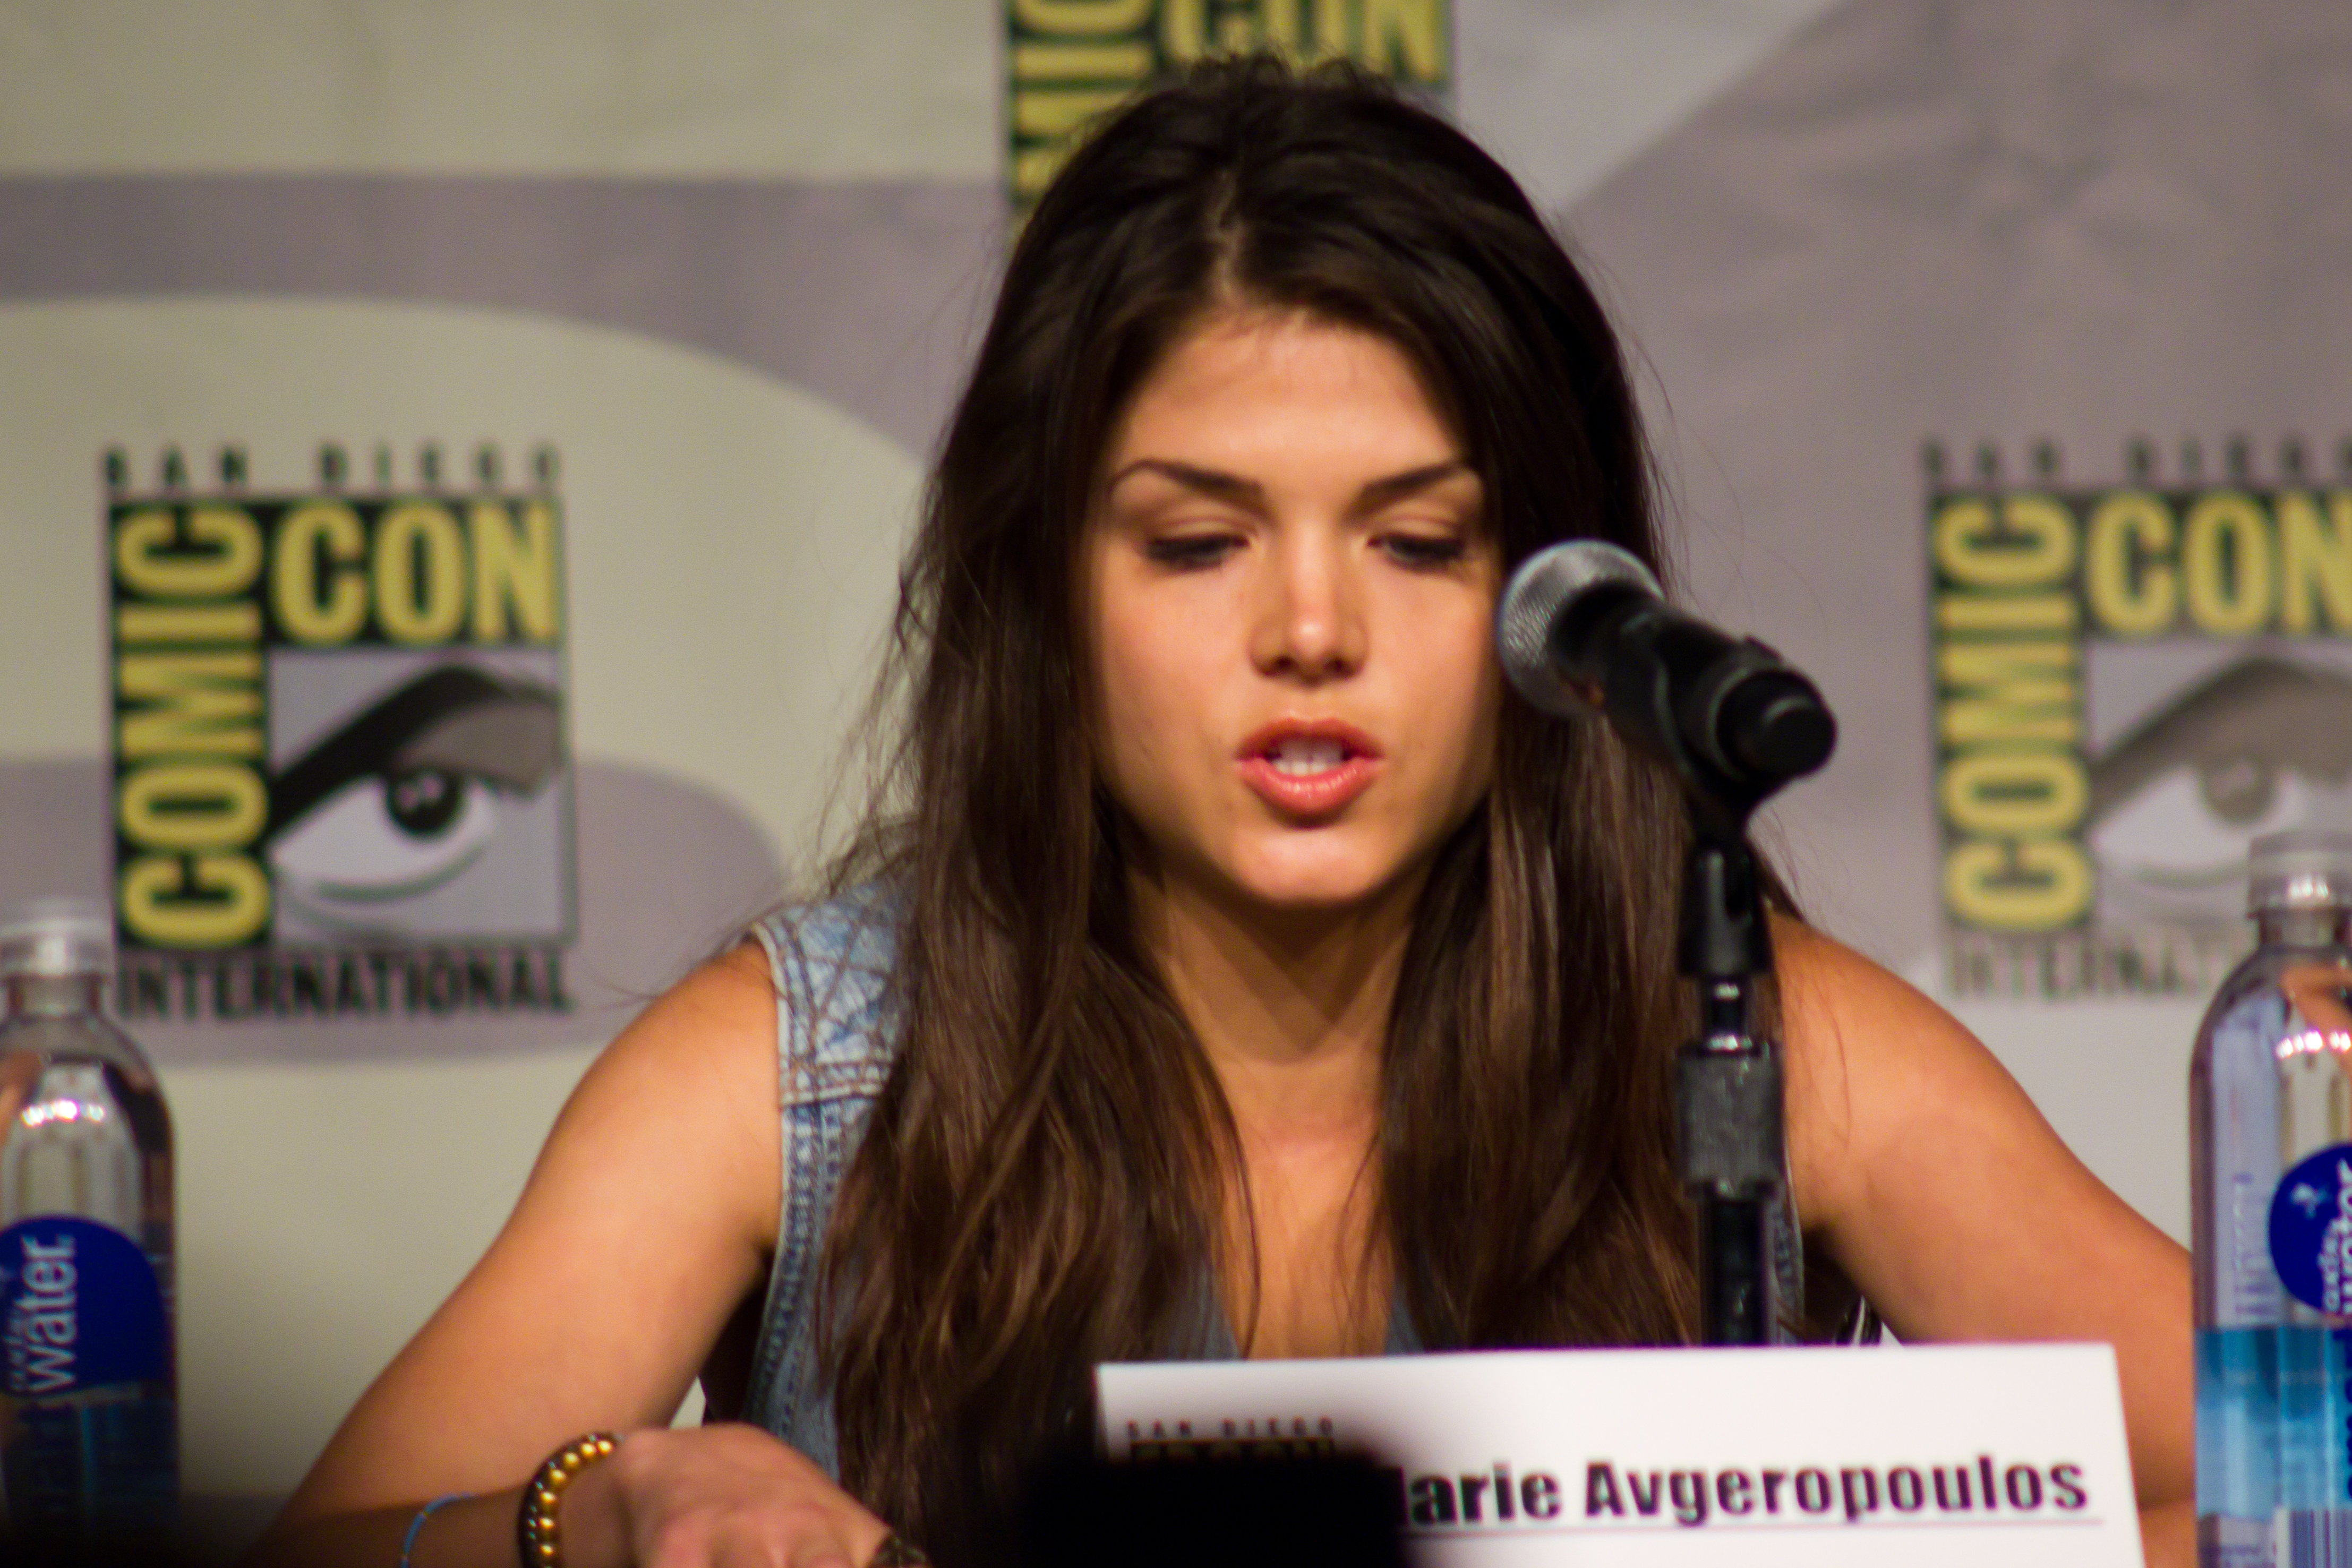 Marie avgeropoulos fugitive at 17